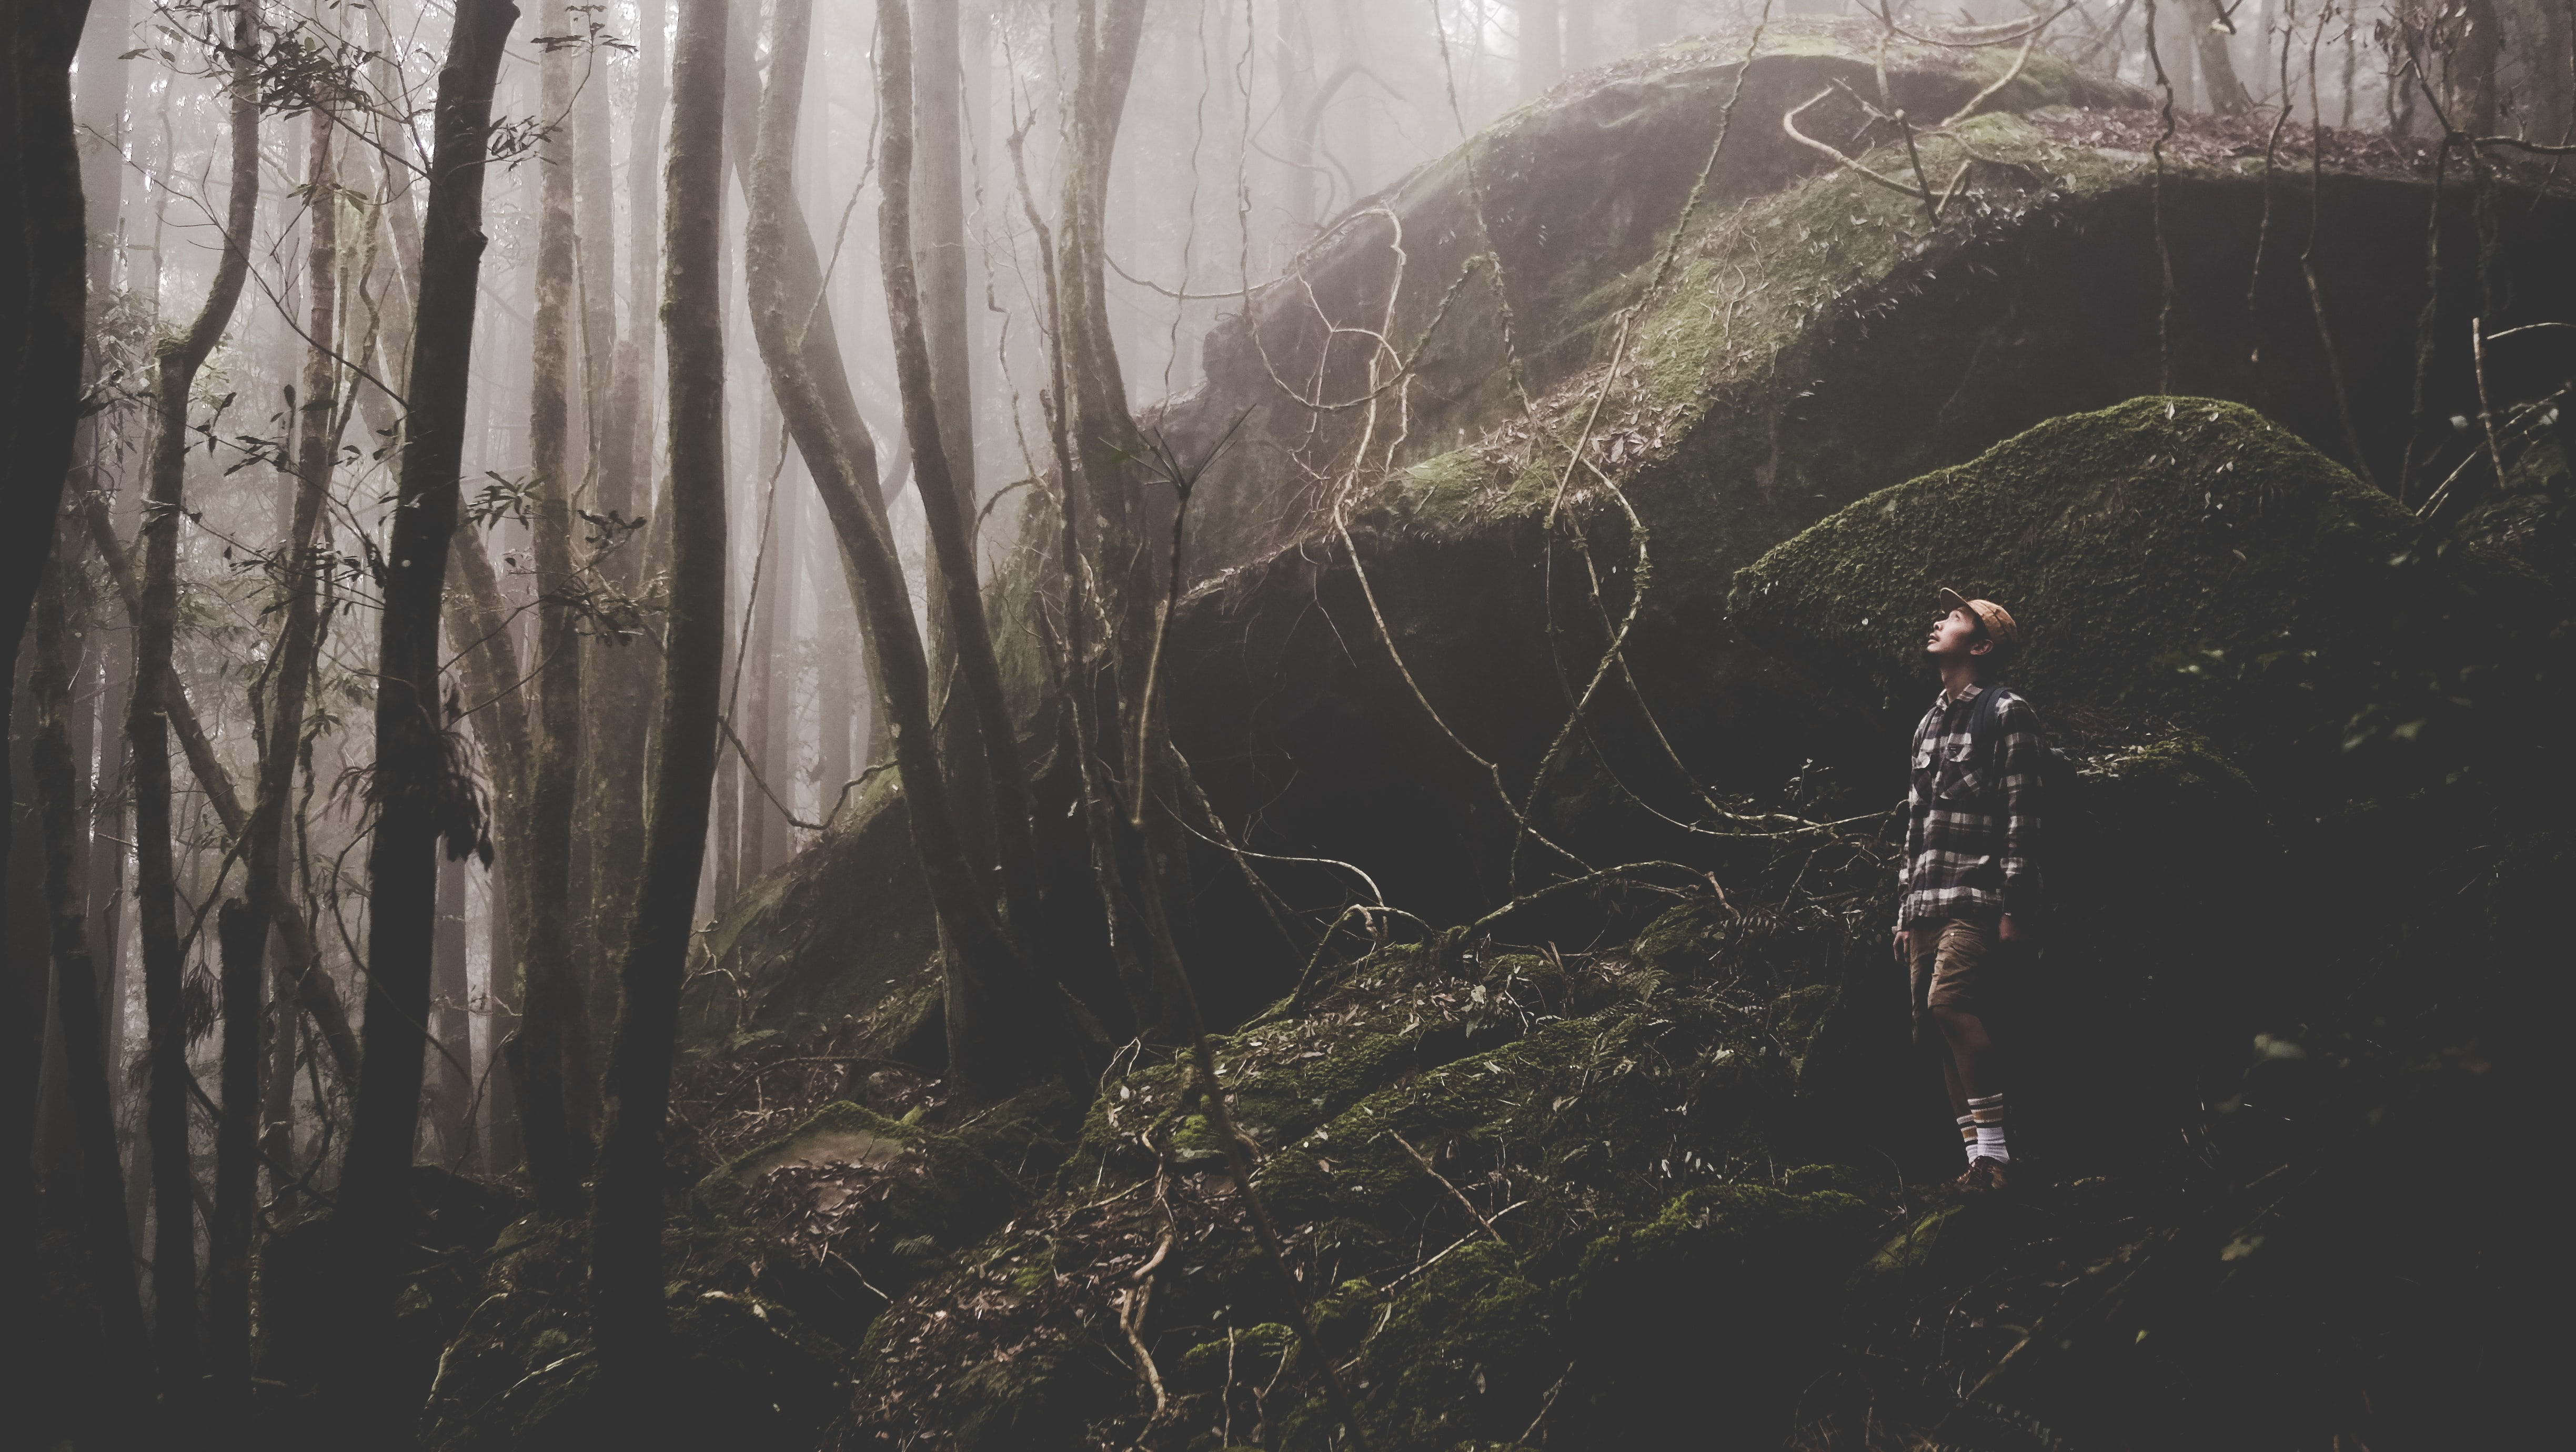 A male hiker looks up while standing on mossy rocks in a fog-shrouded forest